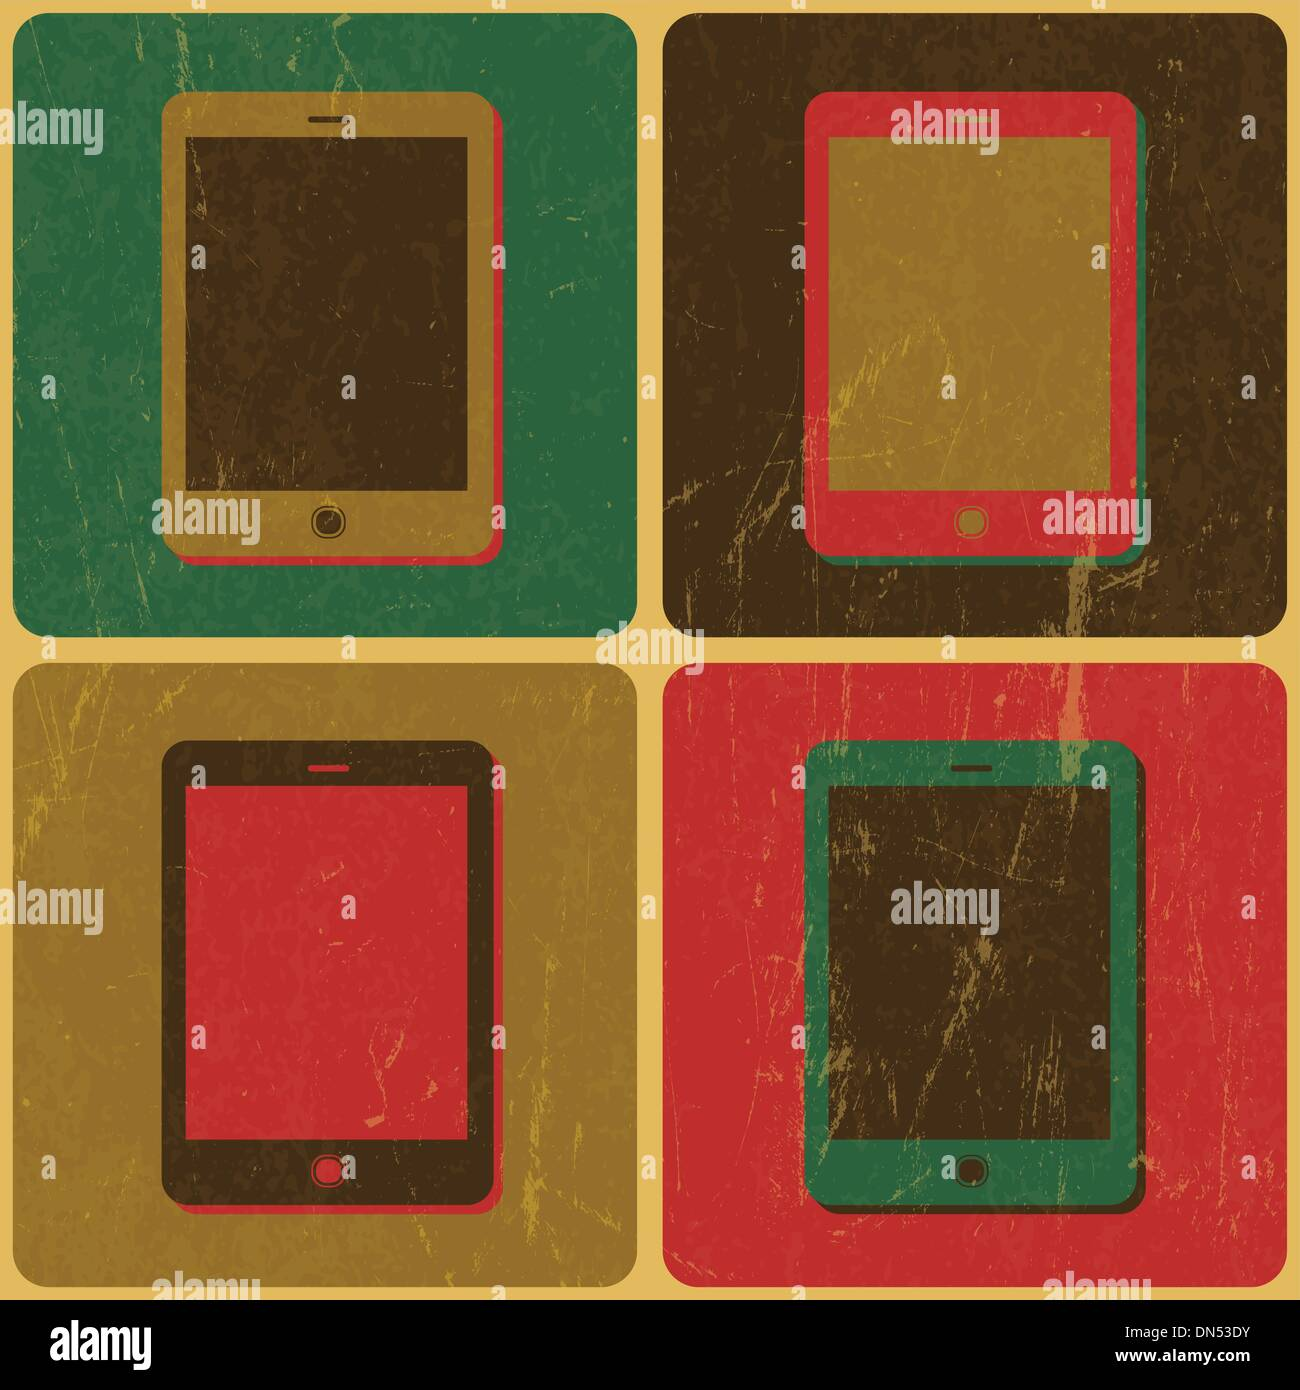 Smart Phone Poster, Pop-Art Styled, Vector - Stock Image